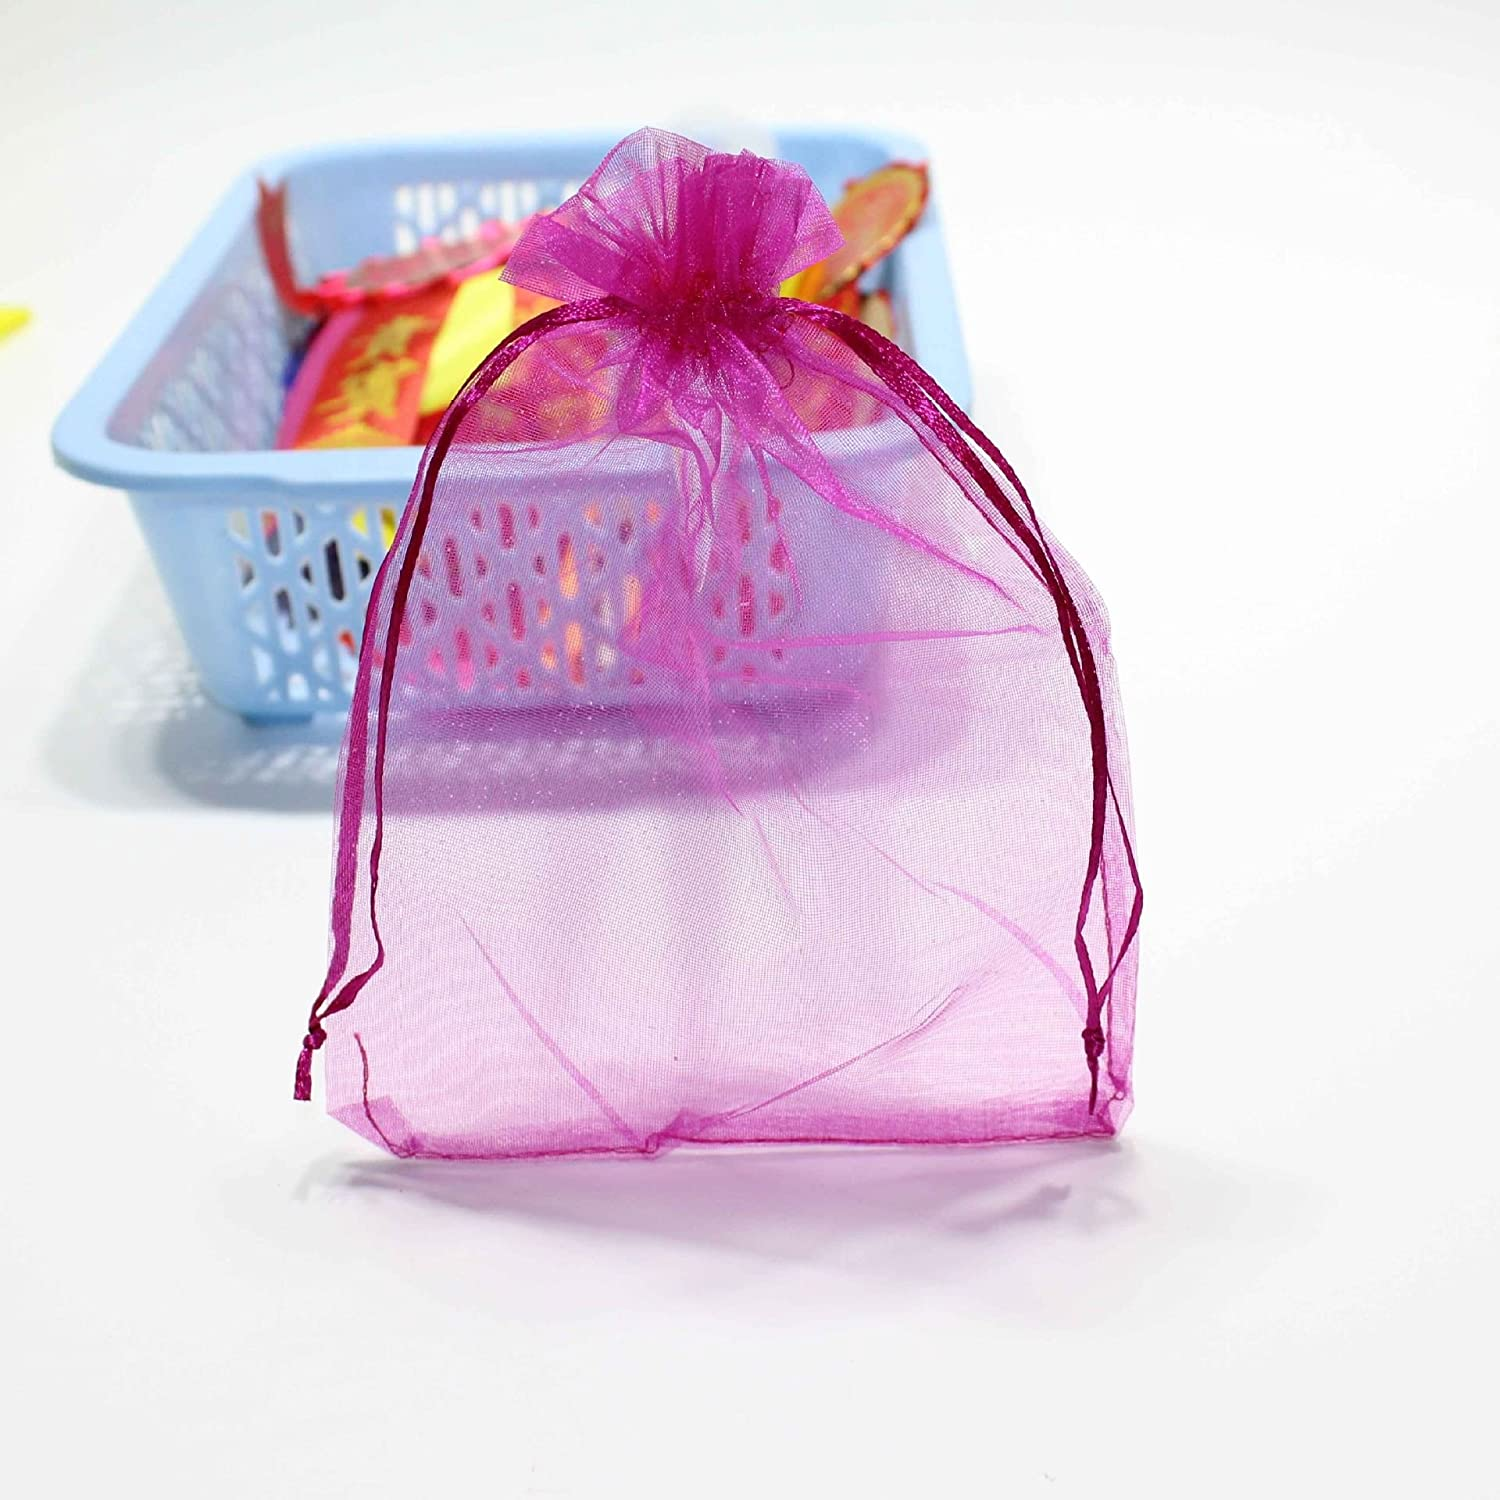 Amazon.com: Fengirl Drawstring Organza Jewelry Pouches Wedding Party ...